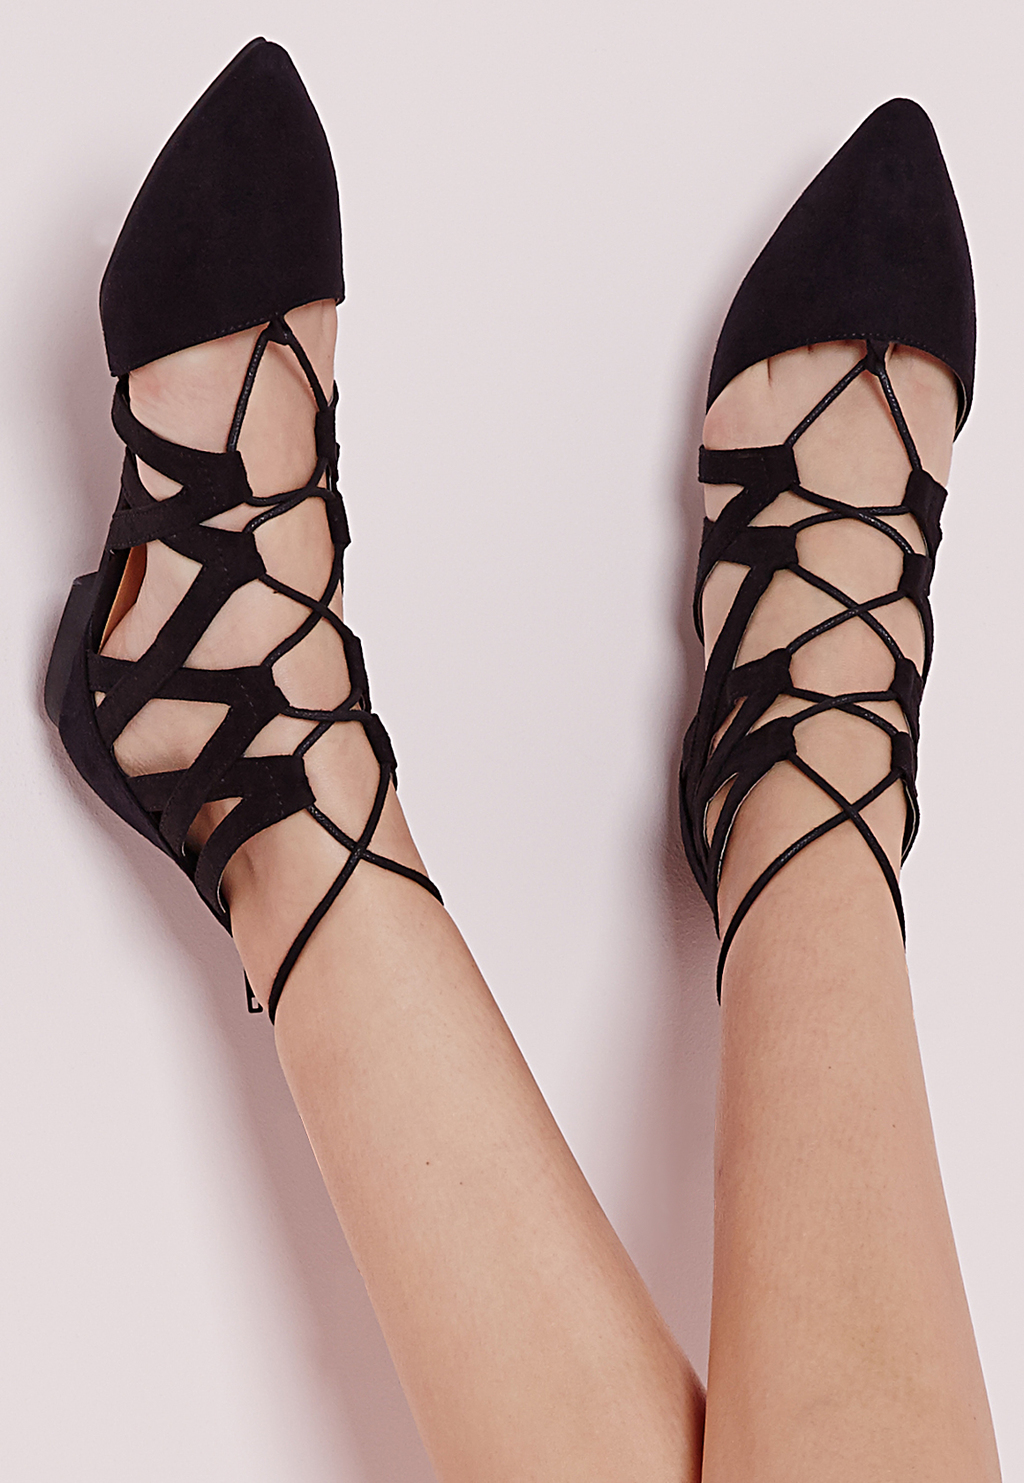 Strappy Lace Up Flat Shoes Black, Black - predominant colour: black; occasions: casual, creative work; heel height: flat; ankle detail: ankle tie; toe: pointed toe; style: ballerinas / pumps; finish: plain; pattern: plain; material: faux suede; season: s/s 2016